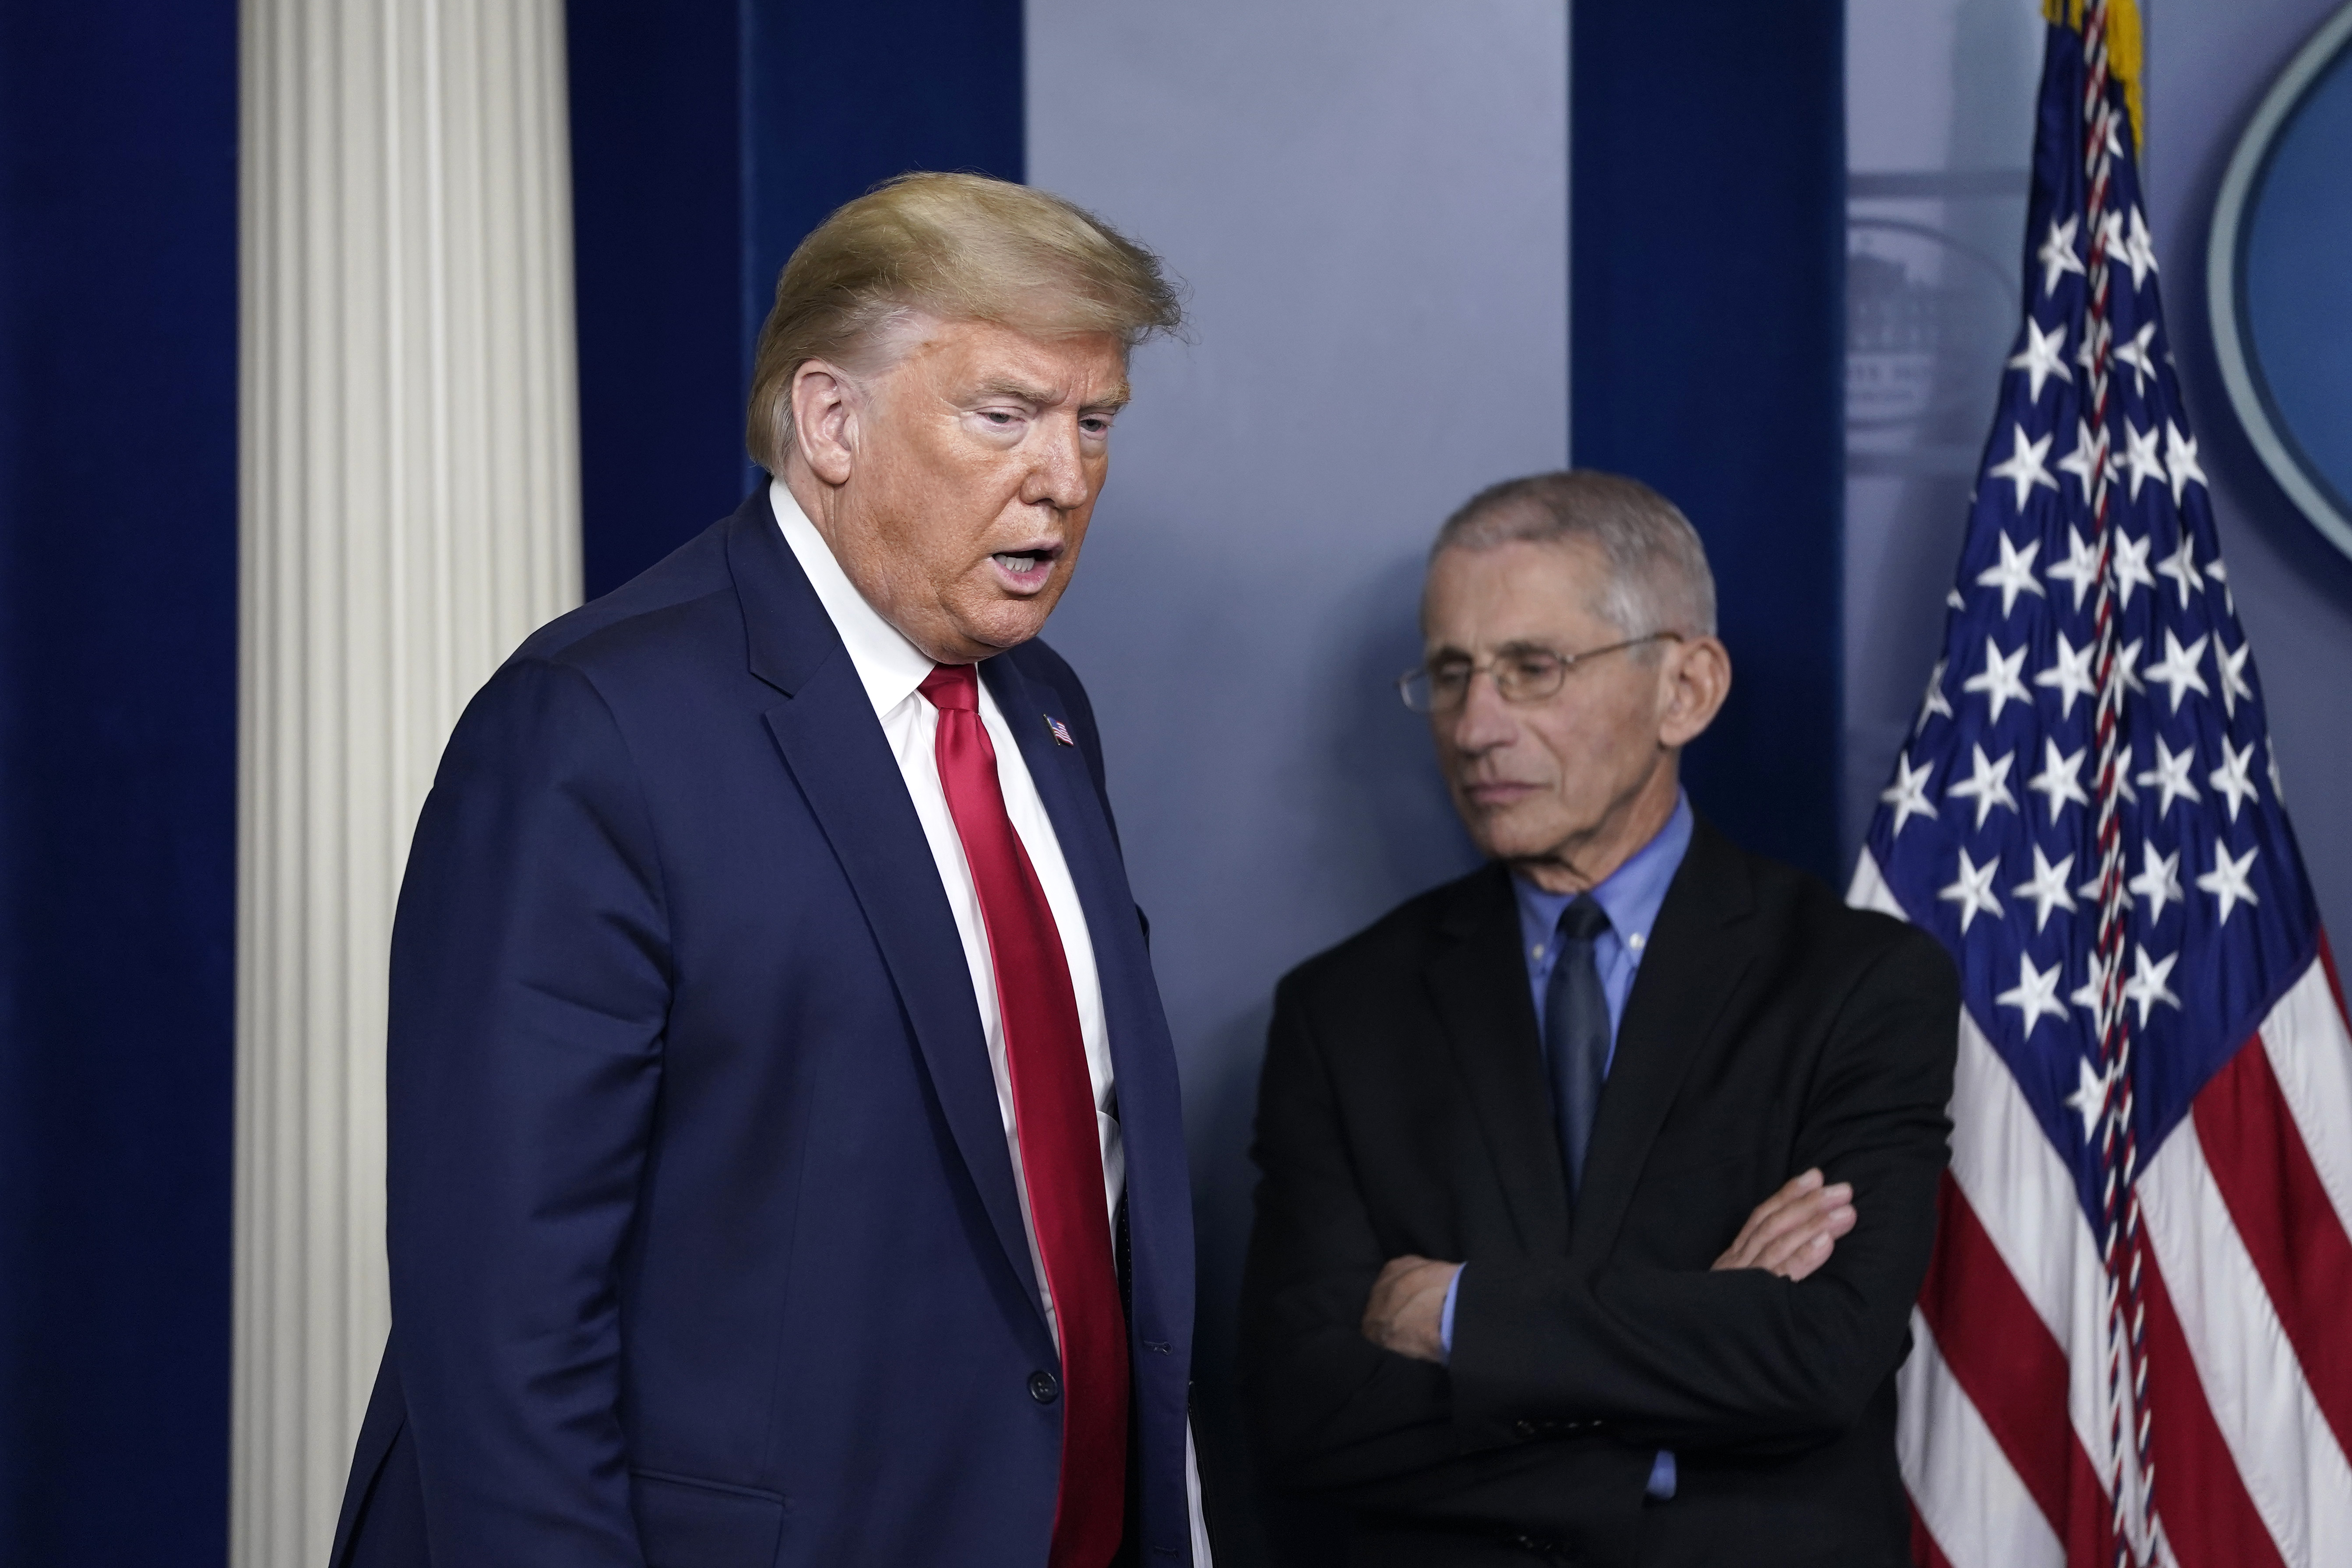 President Donald Trump arrives as National Institute of Allergy and Infectious Diseases Director Anthony Fauci waits for the beginning of a briefing on the coronavirus pandemic in the press briefing room of the White House on March 26, 2020 in Washington, DC. The U.S. House of Representatives is scheduled to vote Friday on the $2 trillion stimulus package to combat the effects of the COVID-19 pandemic. (Photo by Drew Angerer/Getty Images)